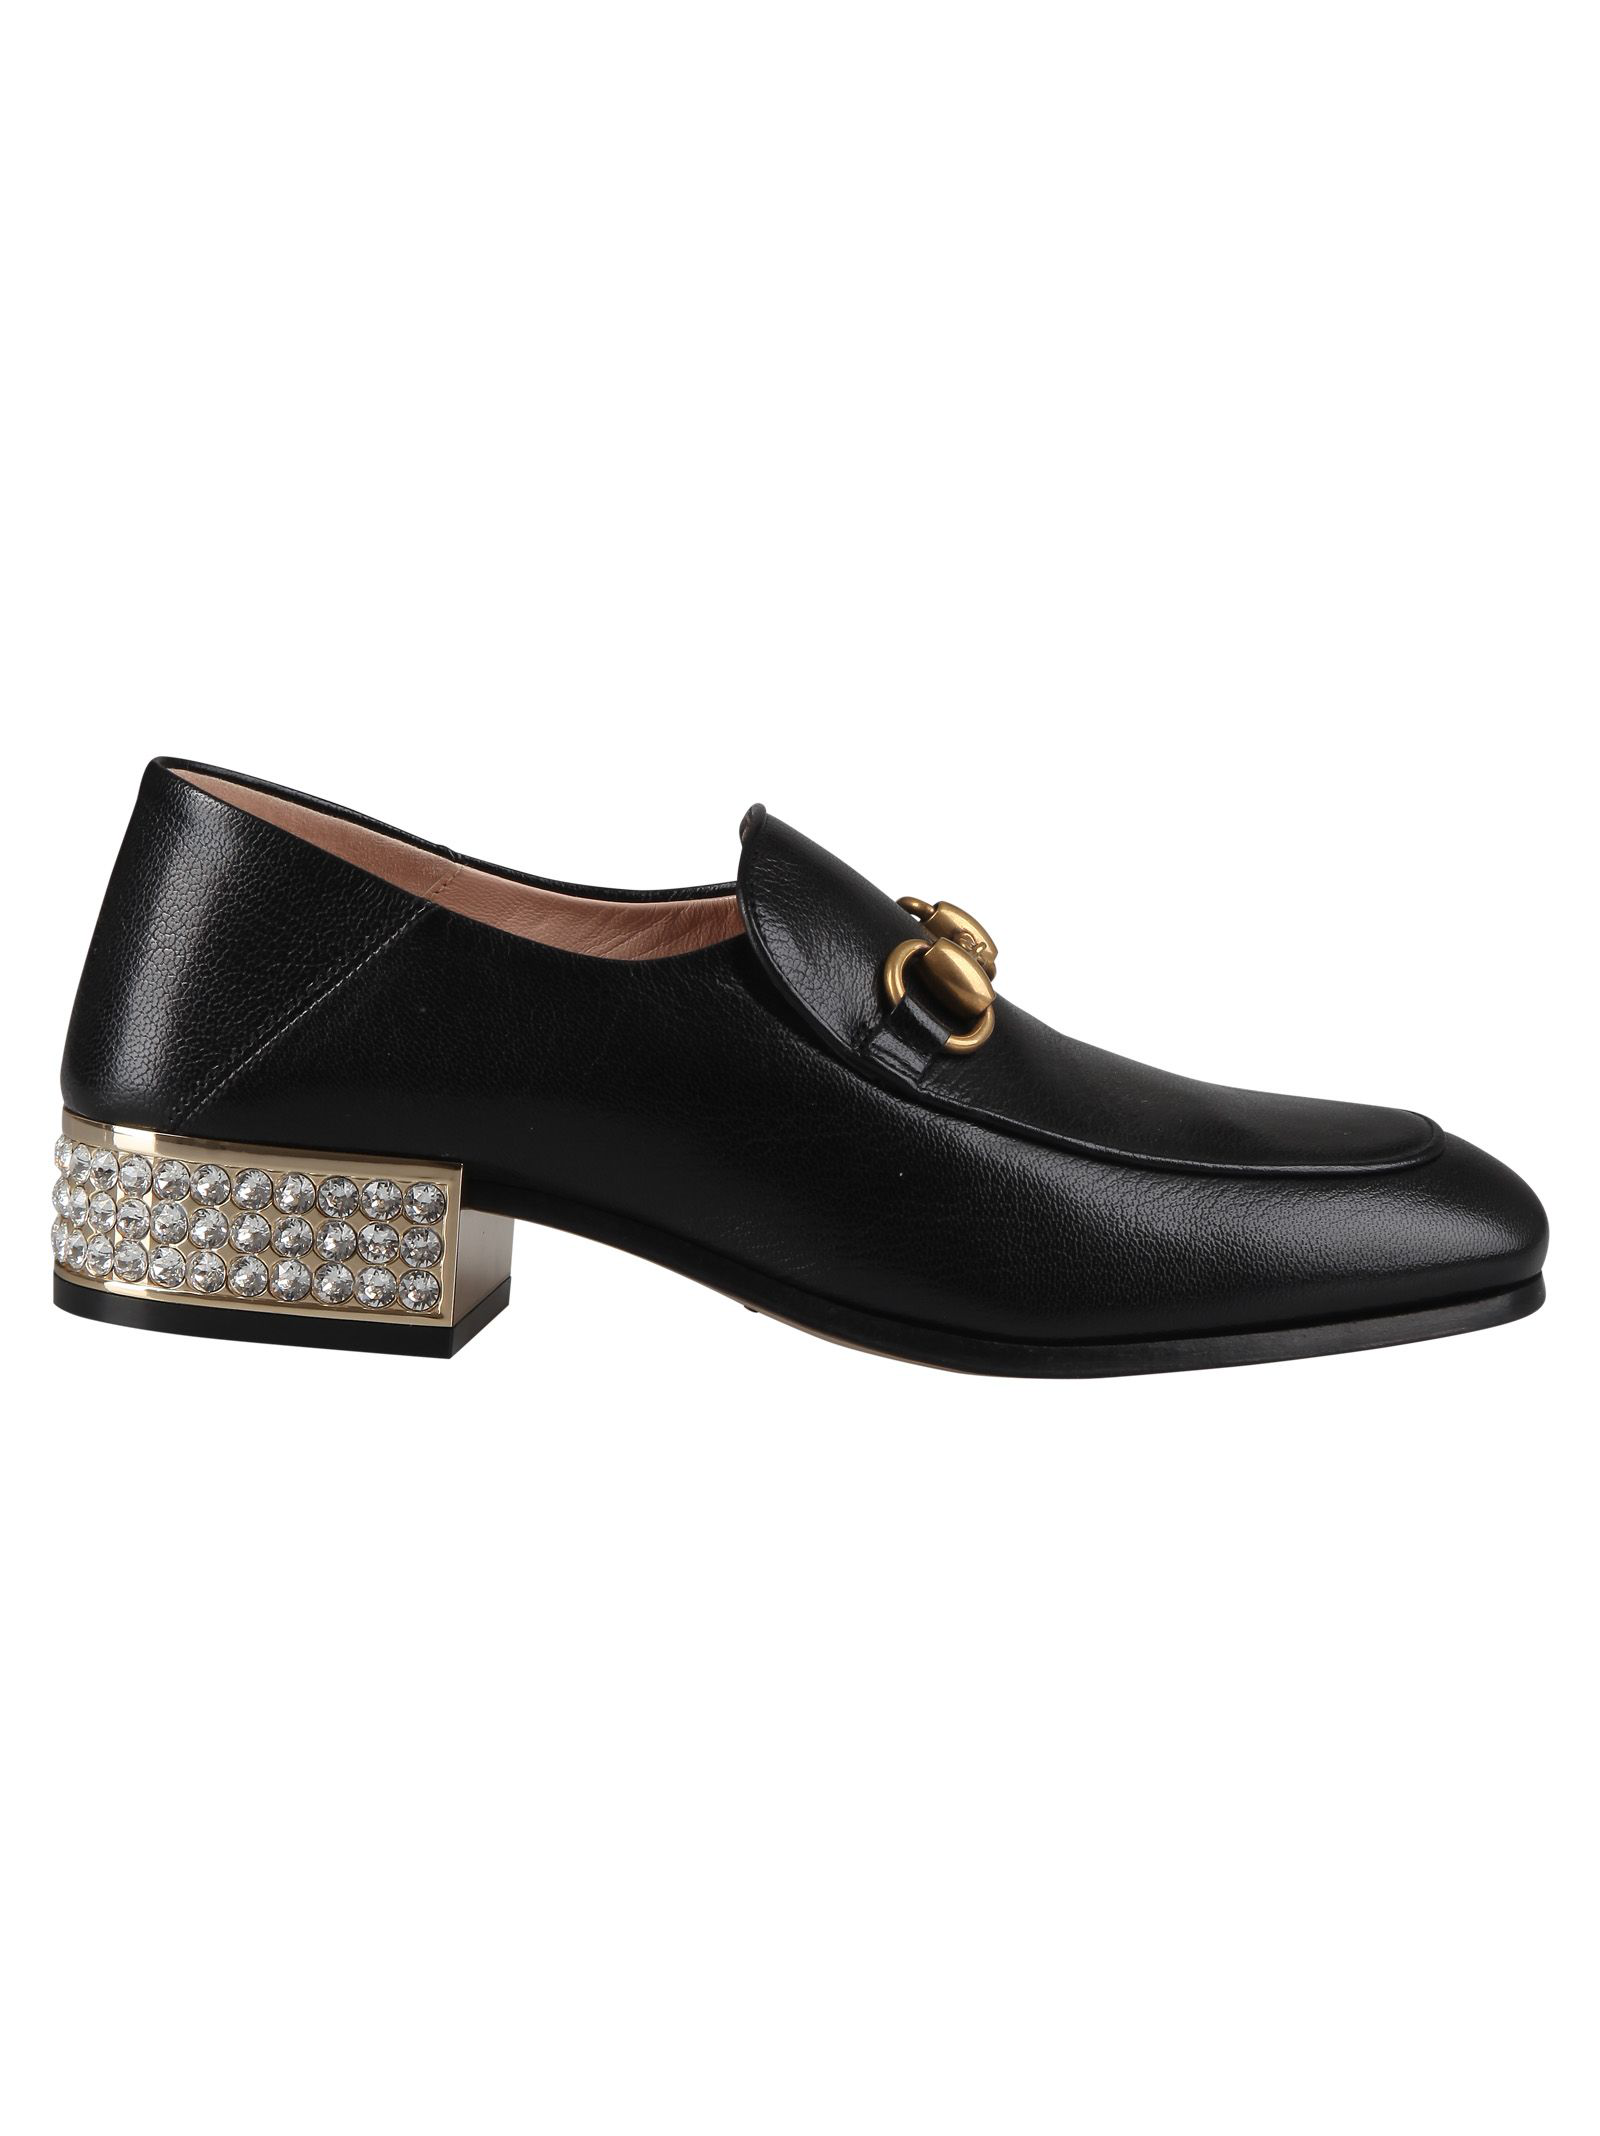 f6aa148d344 Gucci Horsebit Crystal Leather Loafers In Black